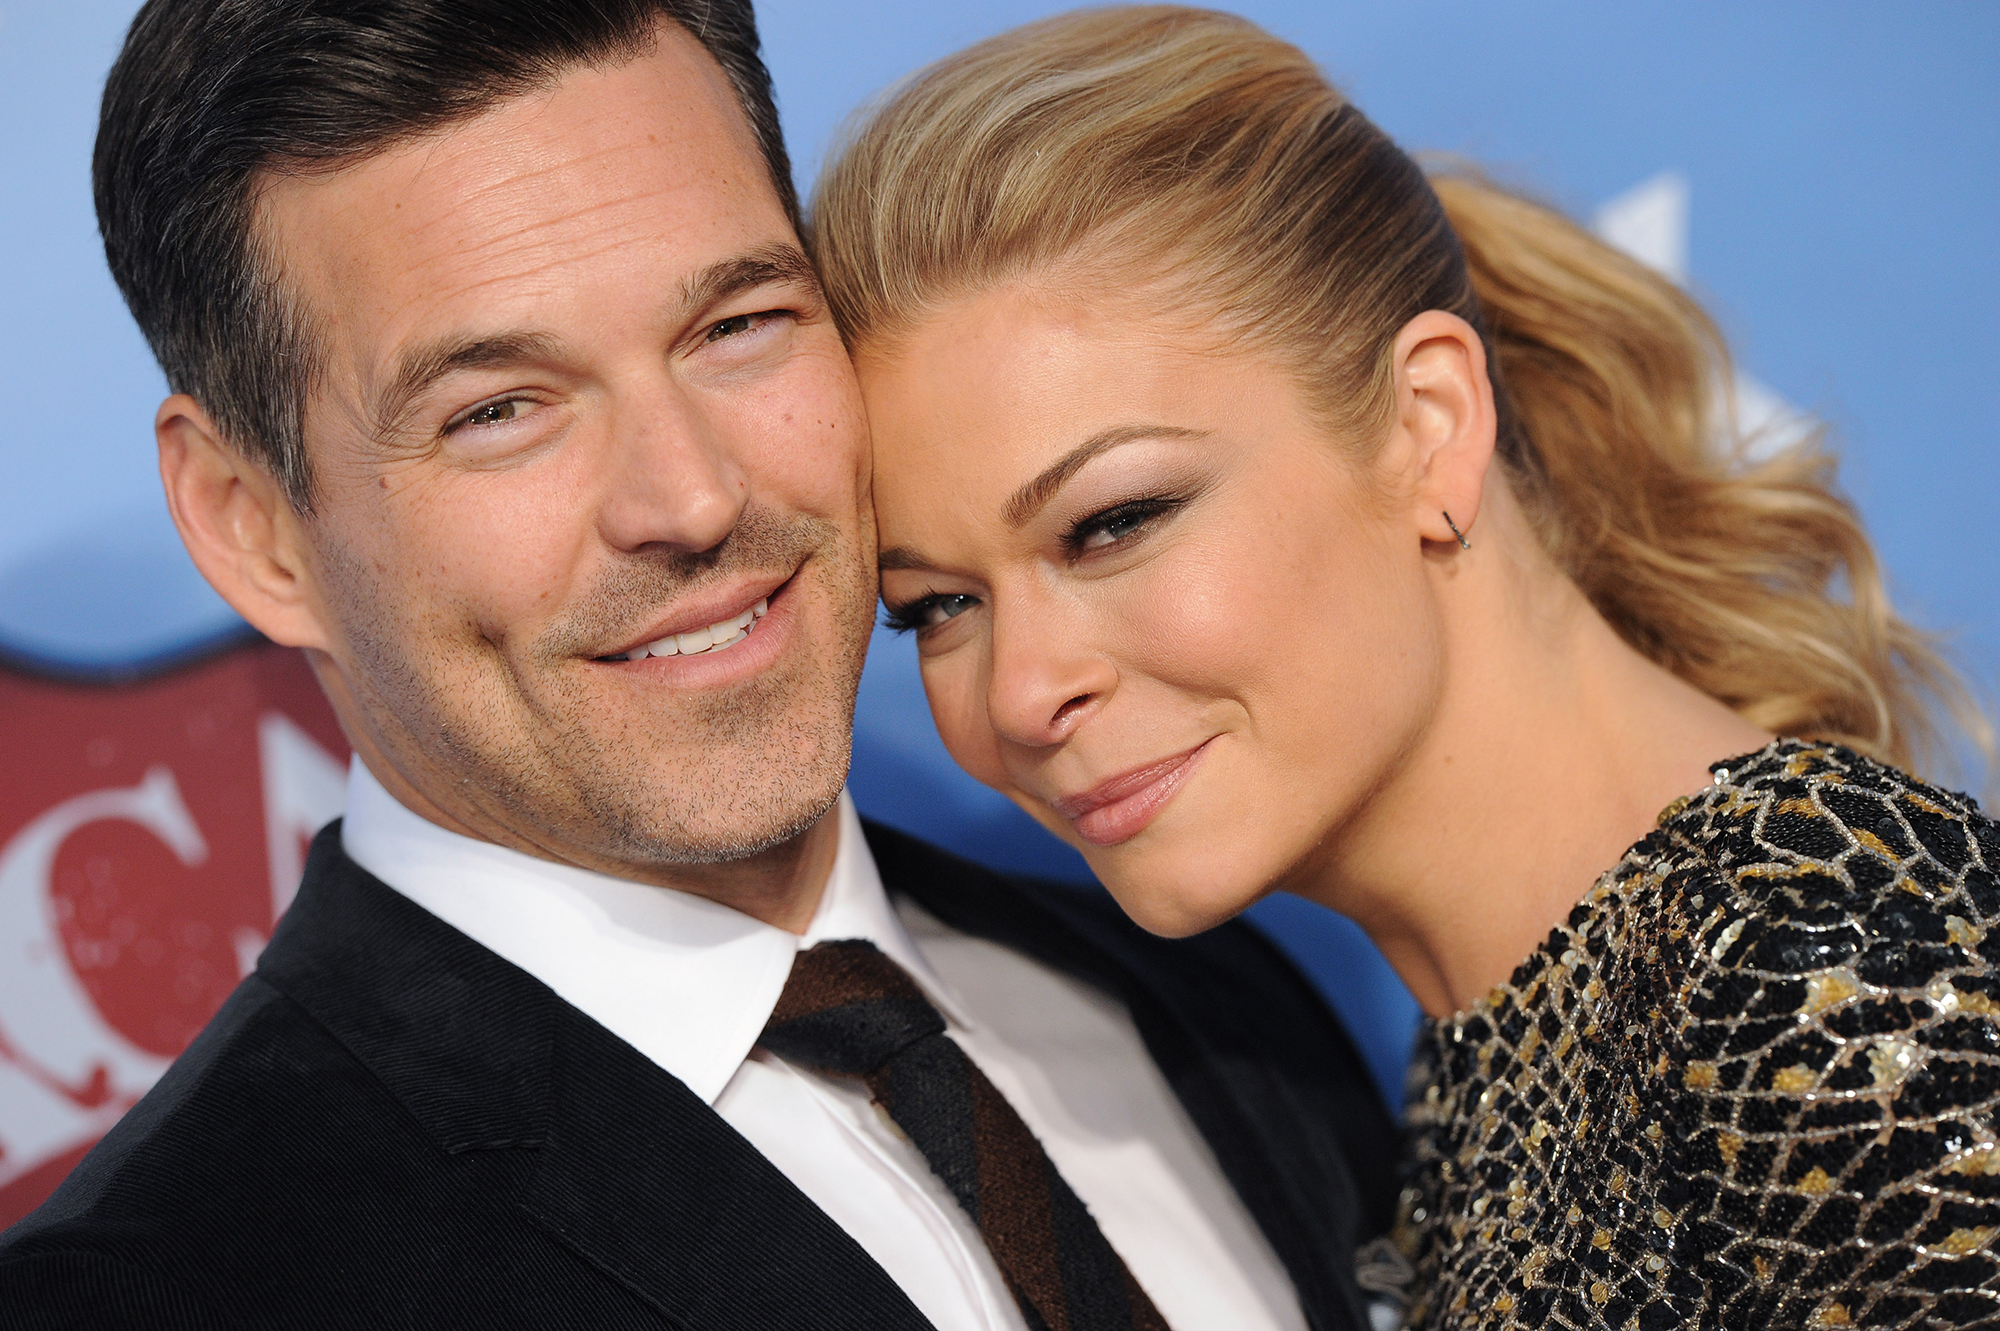 """Revisit Brandi Glanville's Feud With Eddie Cibrian and LeAnn Rimes - After weeks of speculation, Cibrian made it official and proposed to Rimes over the holidays. A source close to Glanville told Us that the Drinking and Tweeting author """"couldn't care less"""" about the engagement because """"LeAnn has gotten exactly what she wanted from the get-go."""""""